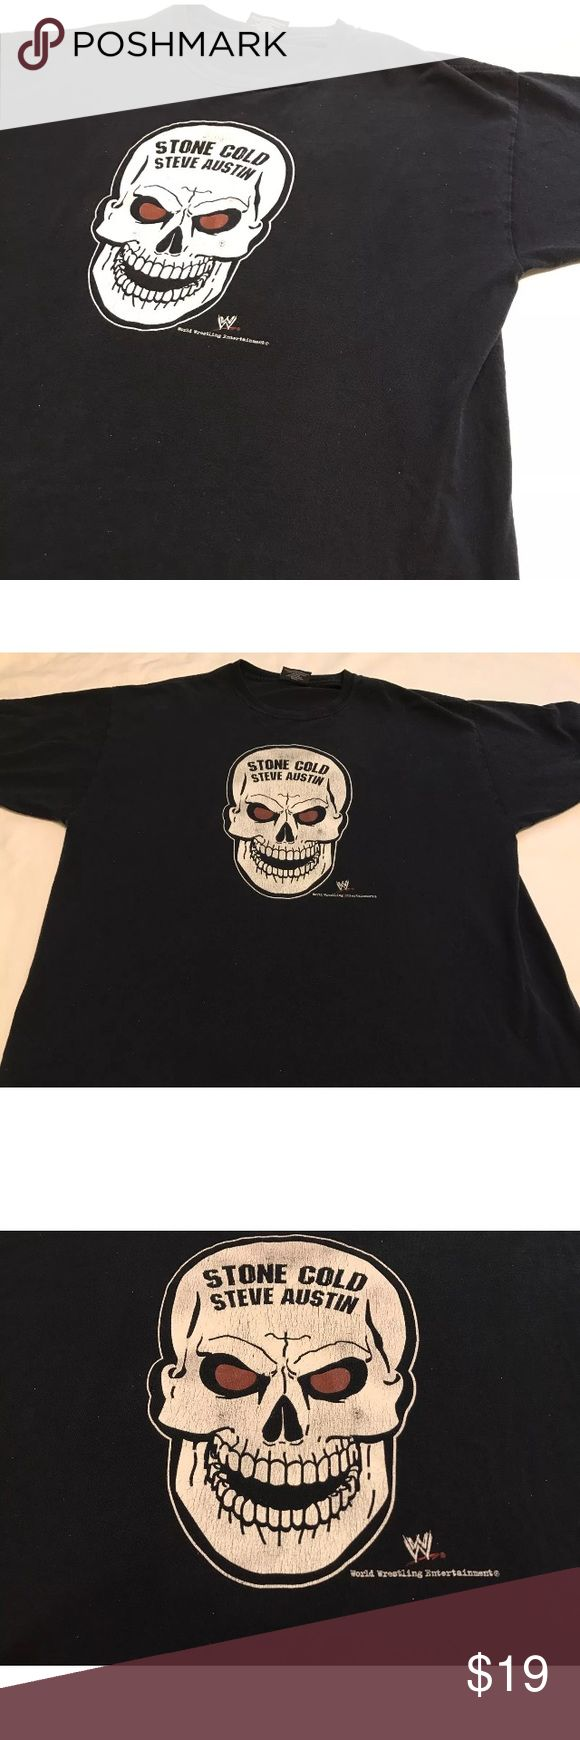 Vintage Stone Cold Steve Austin WWE T Shirt XL WWF Vintage Stone Cold shirt. Good condition, no holes or stains. Keep in mind this is vintage. So, there is a little fading to the black cotton. Men's XL. Shipping same day or next! WWE Shirts Tees - Short Sleeve